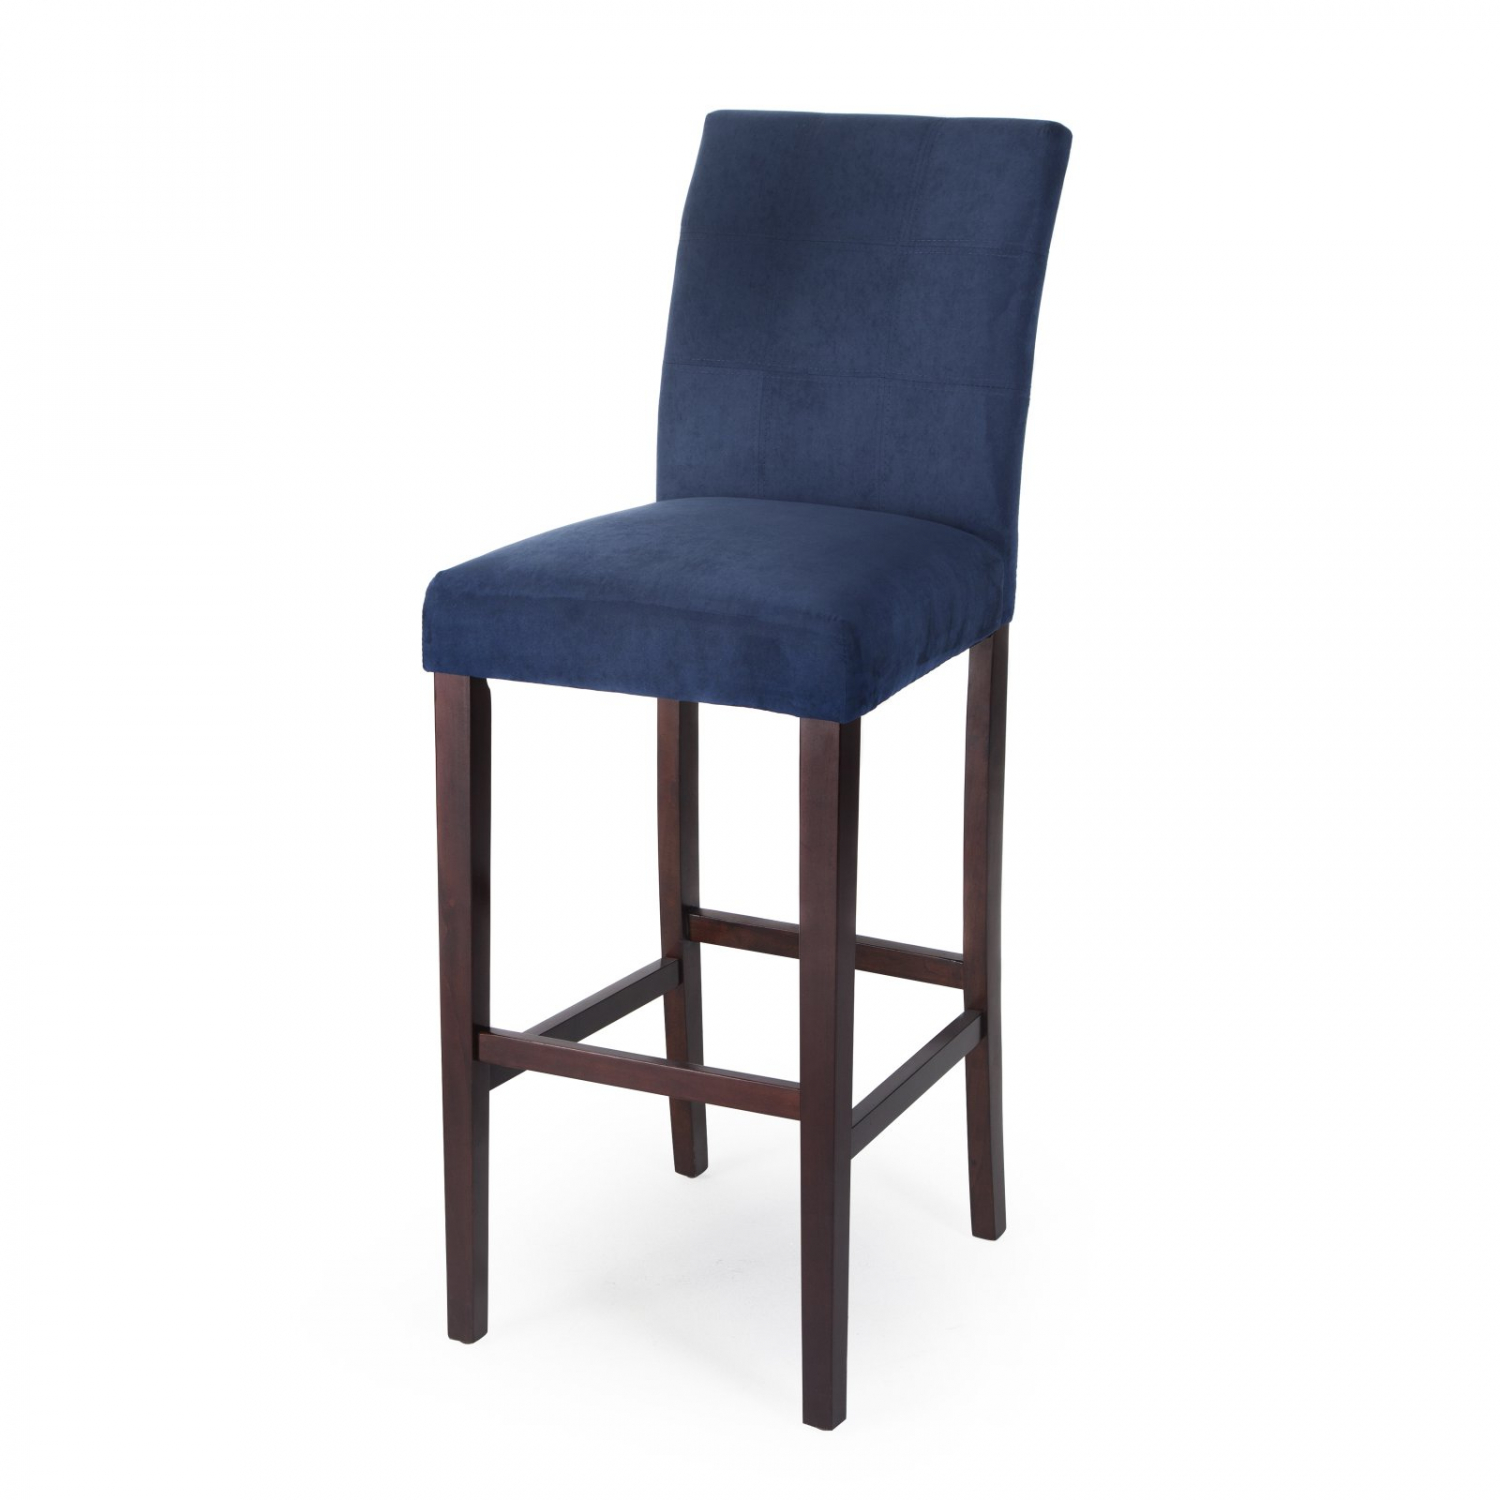 Terrific Details About Palazzo Extra Tall Bar Stool Set Of 2 Dining Furniture Counter Chairs Navy Blue Uwap Interior Chair Design Uwaporg